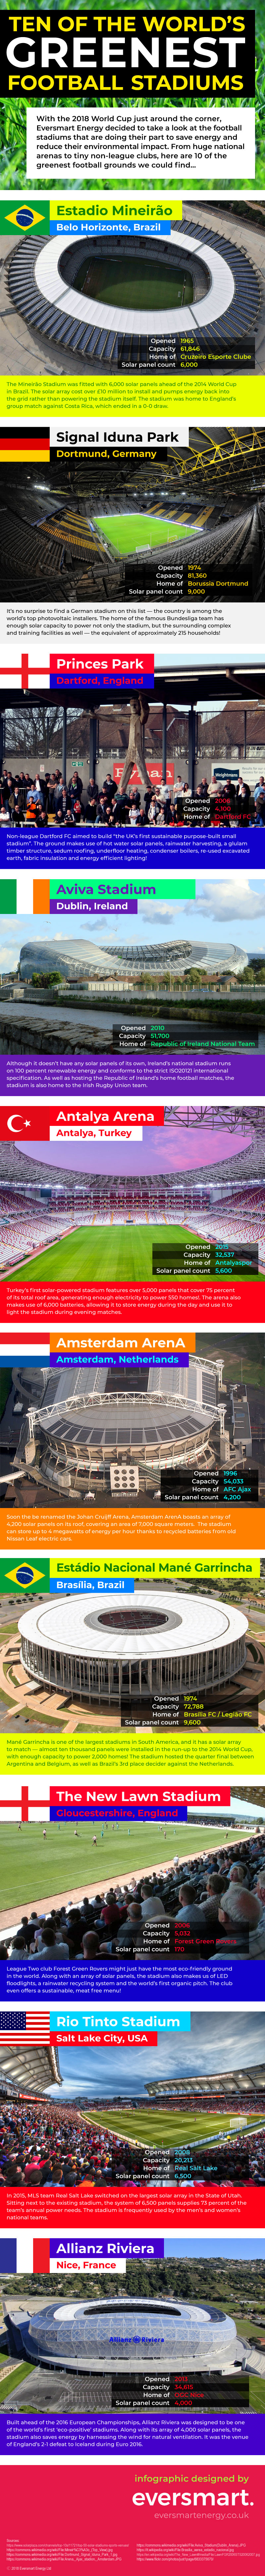 green-stadiums-infographic